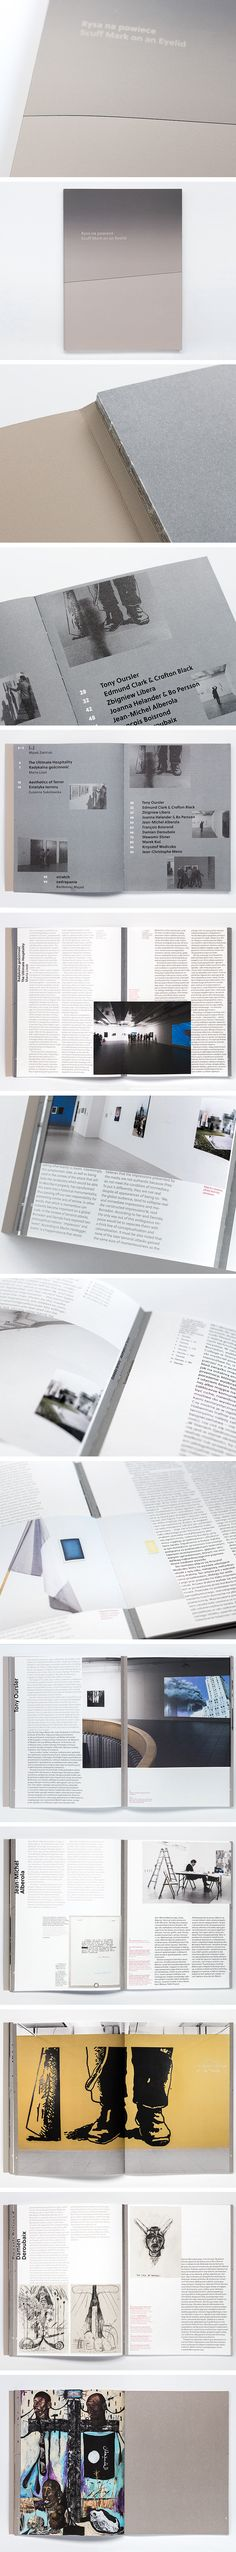 Book design made by Kasia Goczol fo BWA Contemporary Art Gallery in Katowice, PL. 'Scuff Mark on an Eyelid' (Rysa na powiece) — a catalogue summary of the exibition.